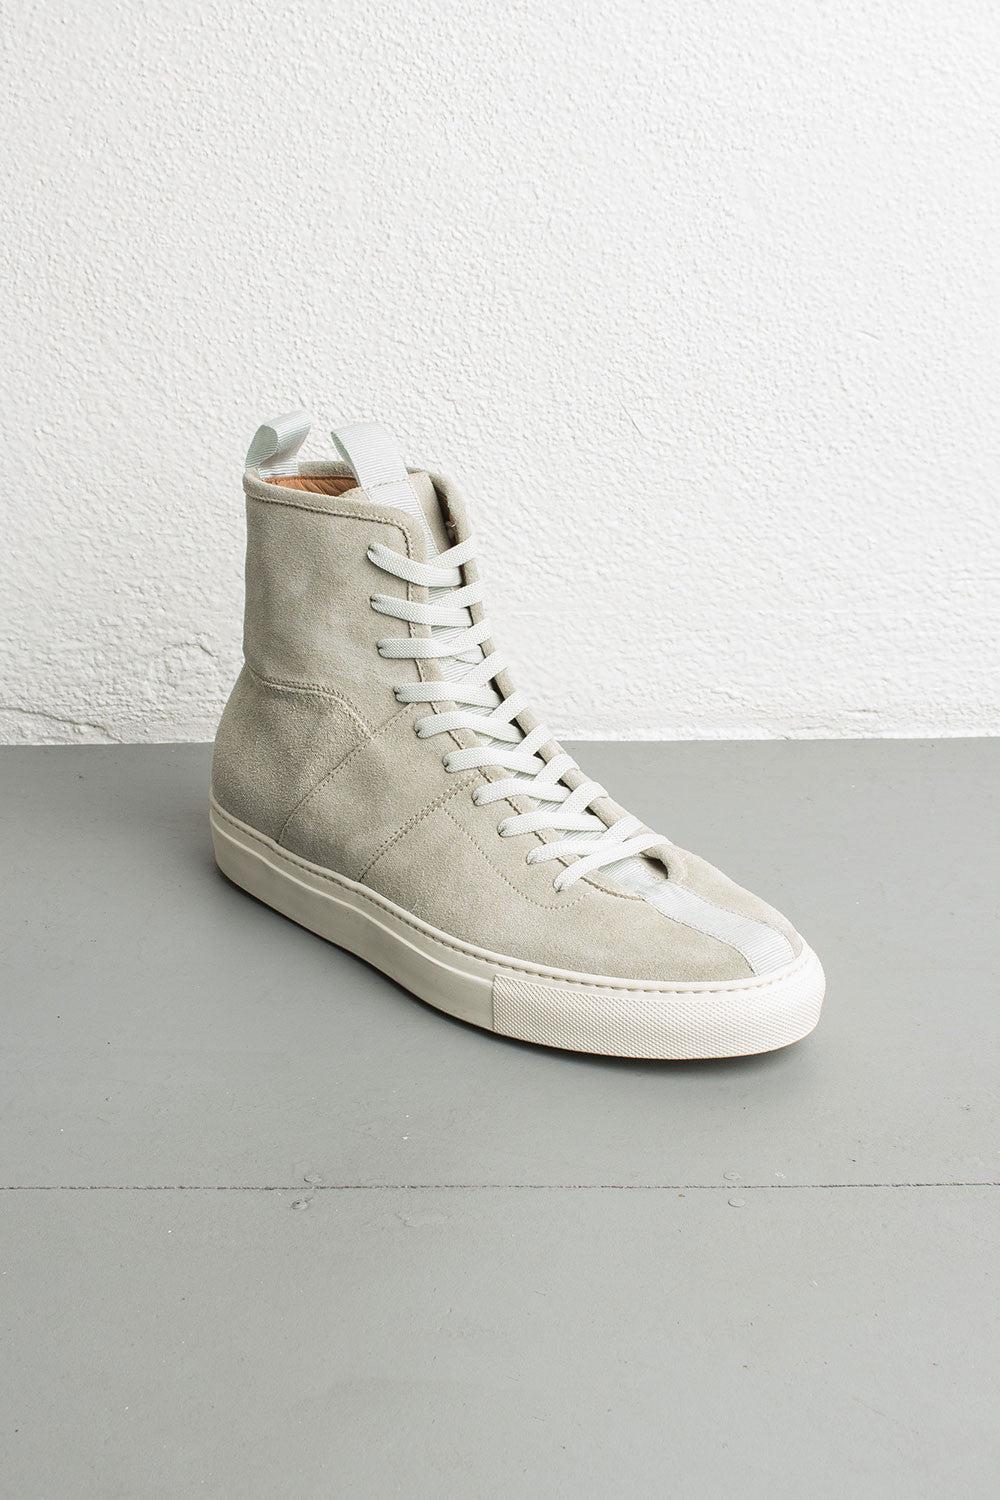 sage high top sneakers by daniel patrick